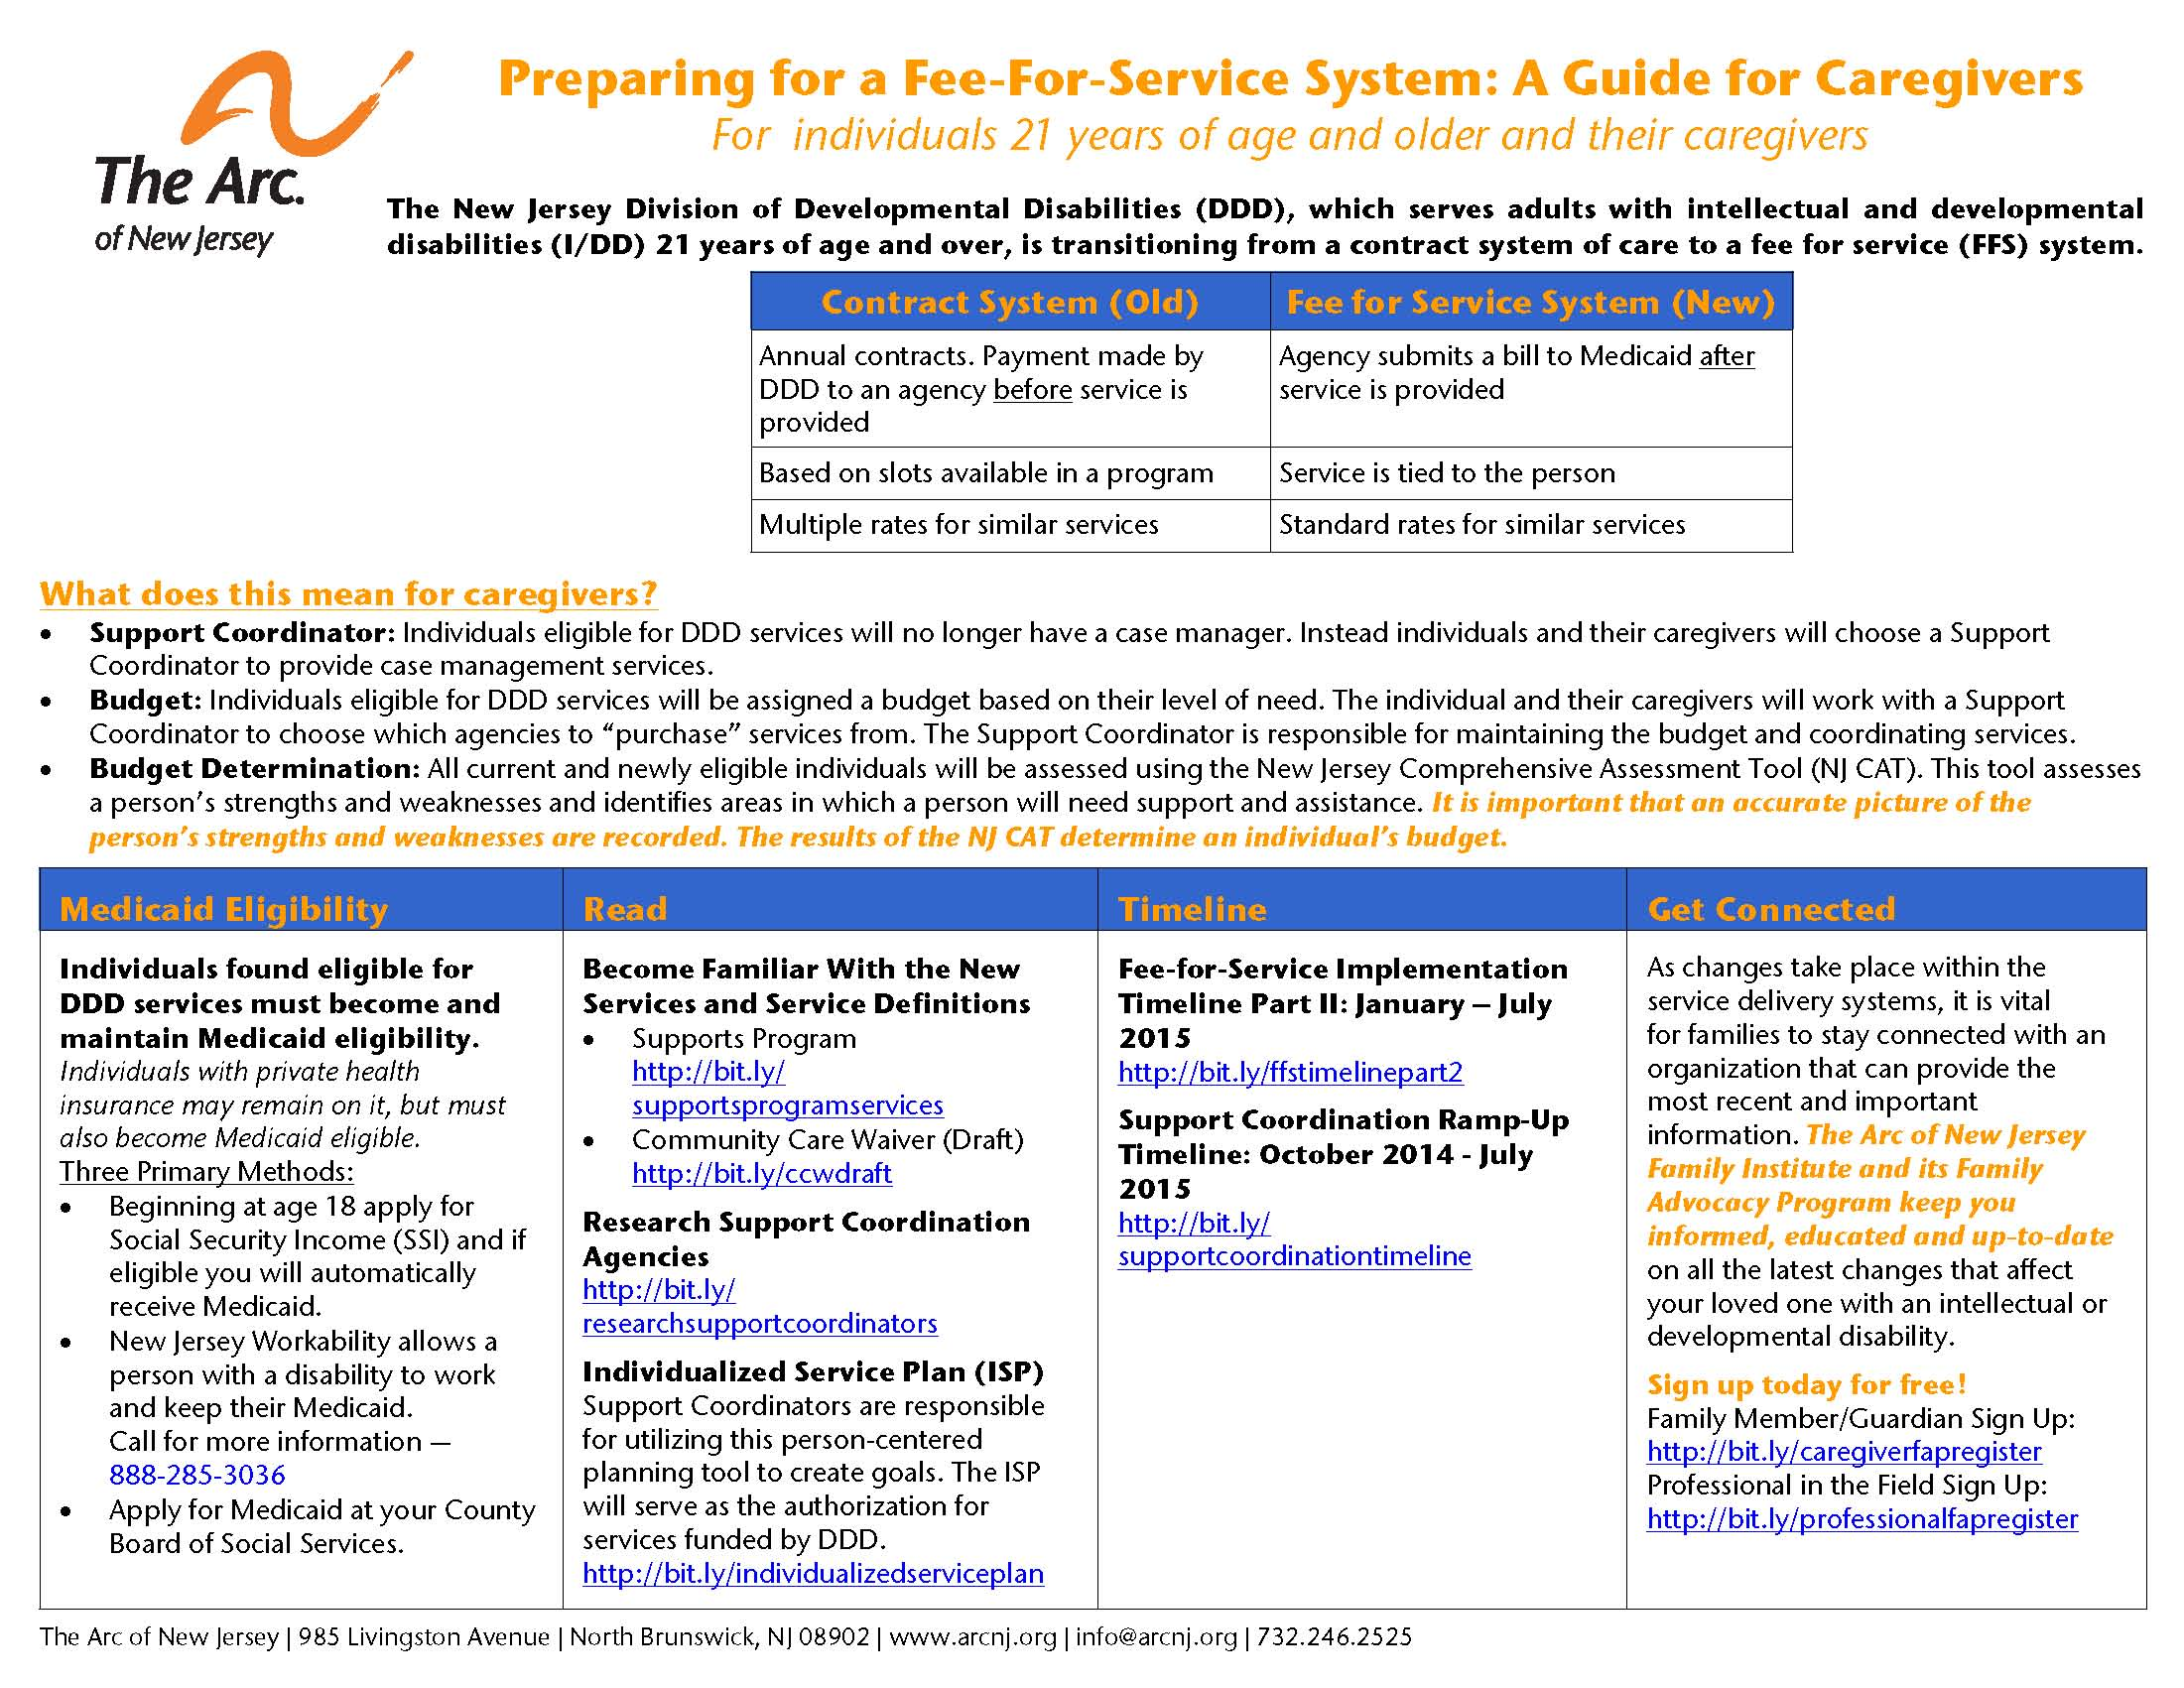 The Division of Developmental Disabilities Change to a Fee-For-Service System (applies to individuals 21+)